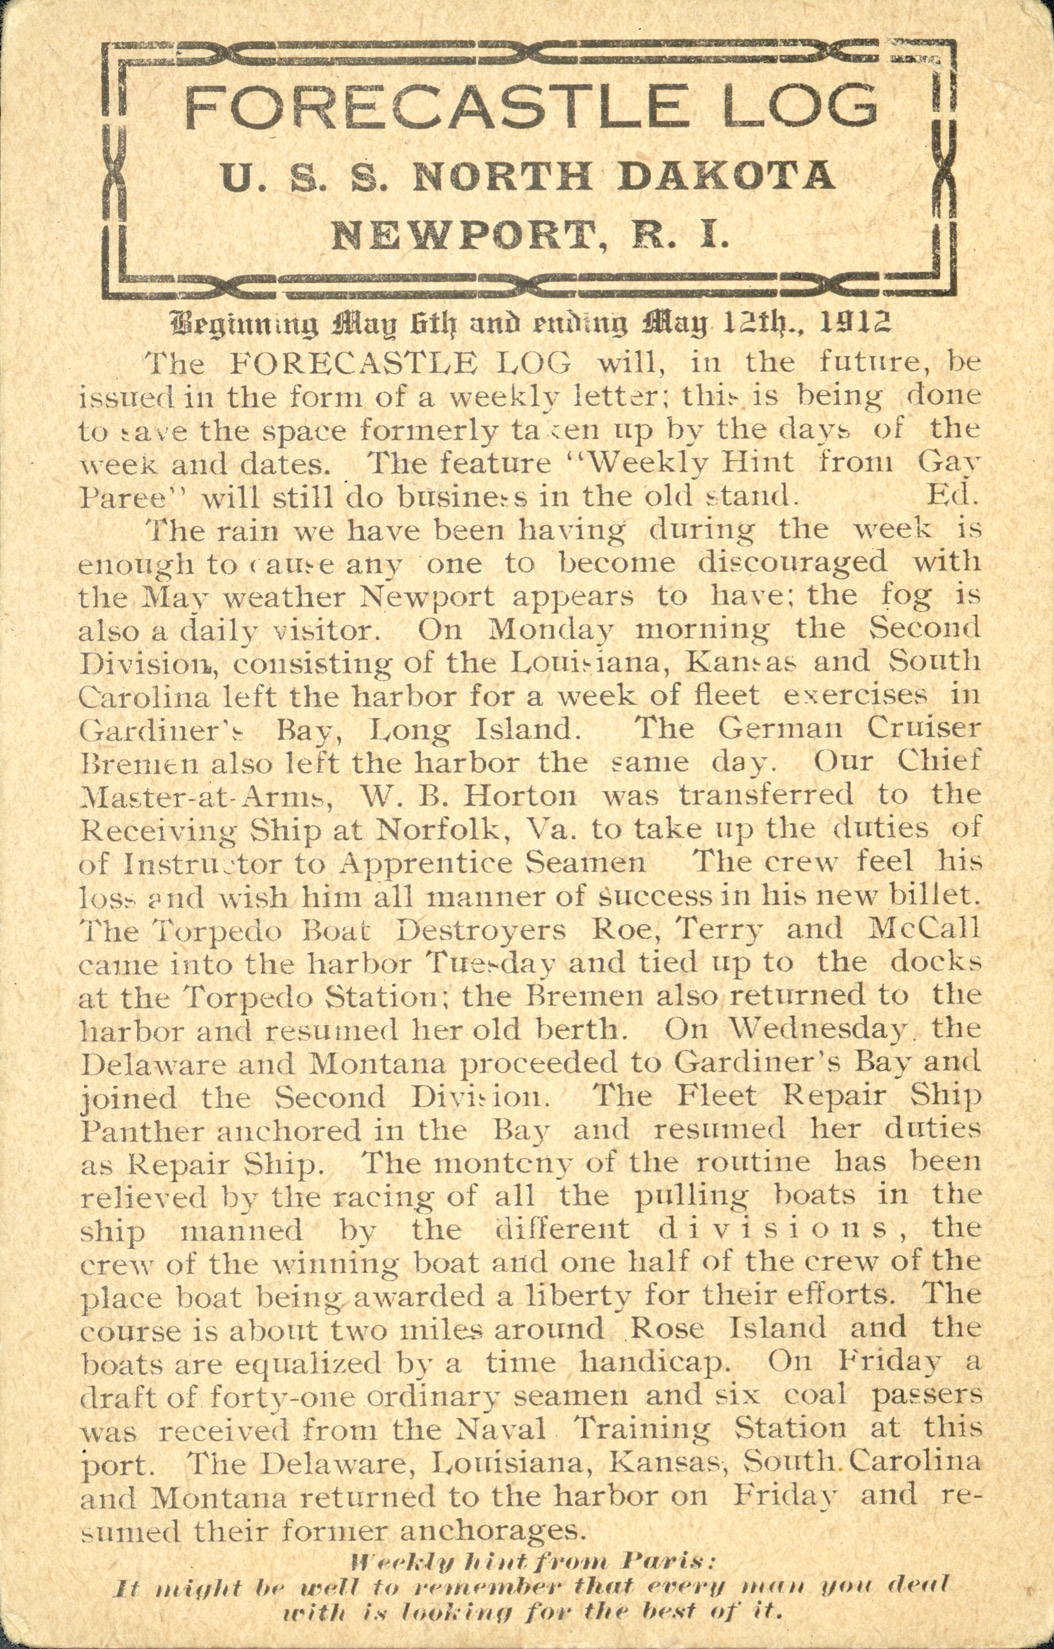 The first edition of the Forecastle Log